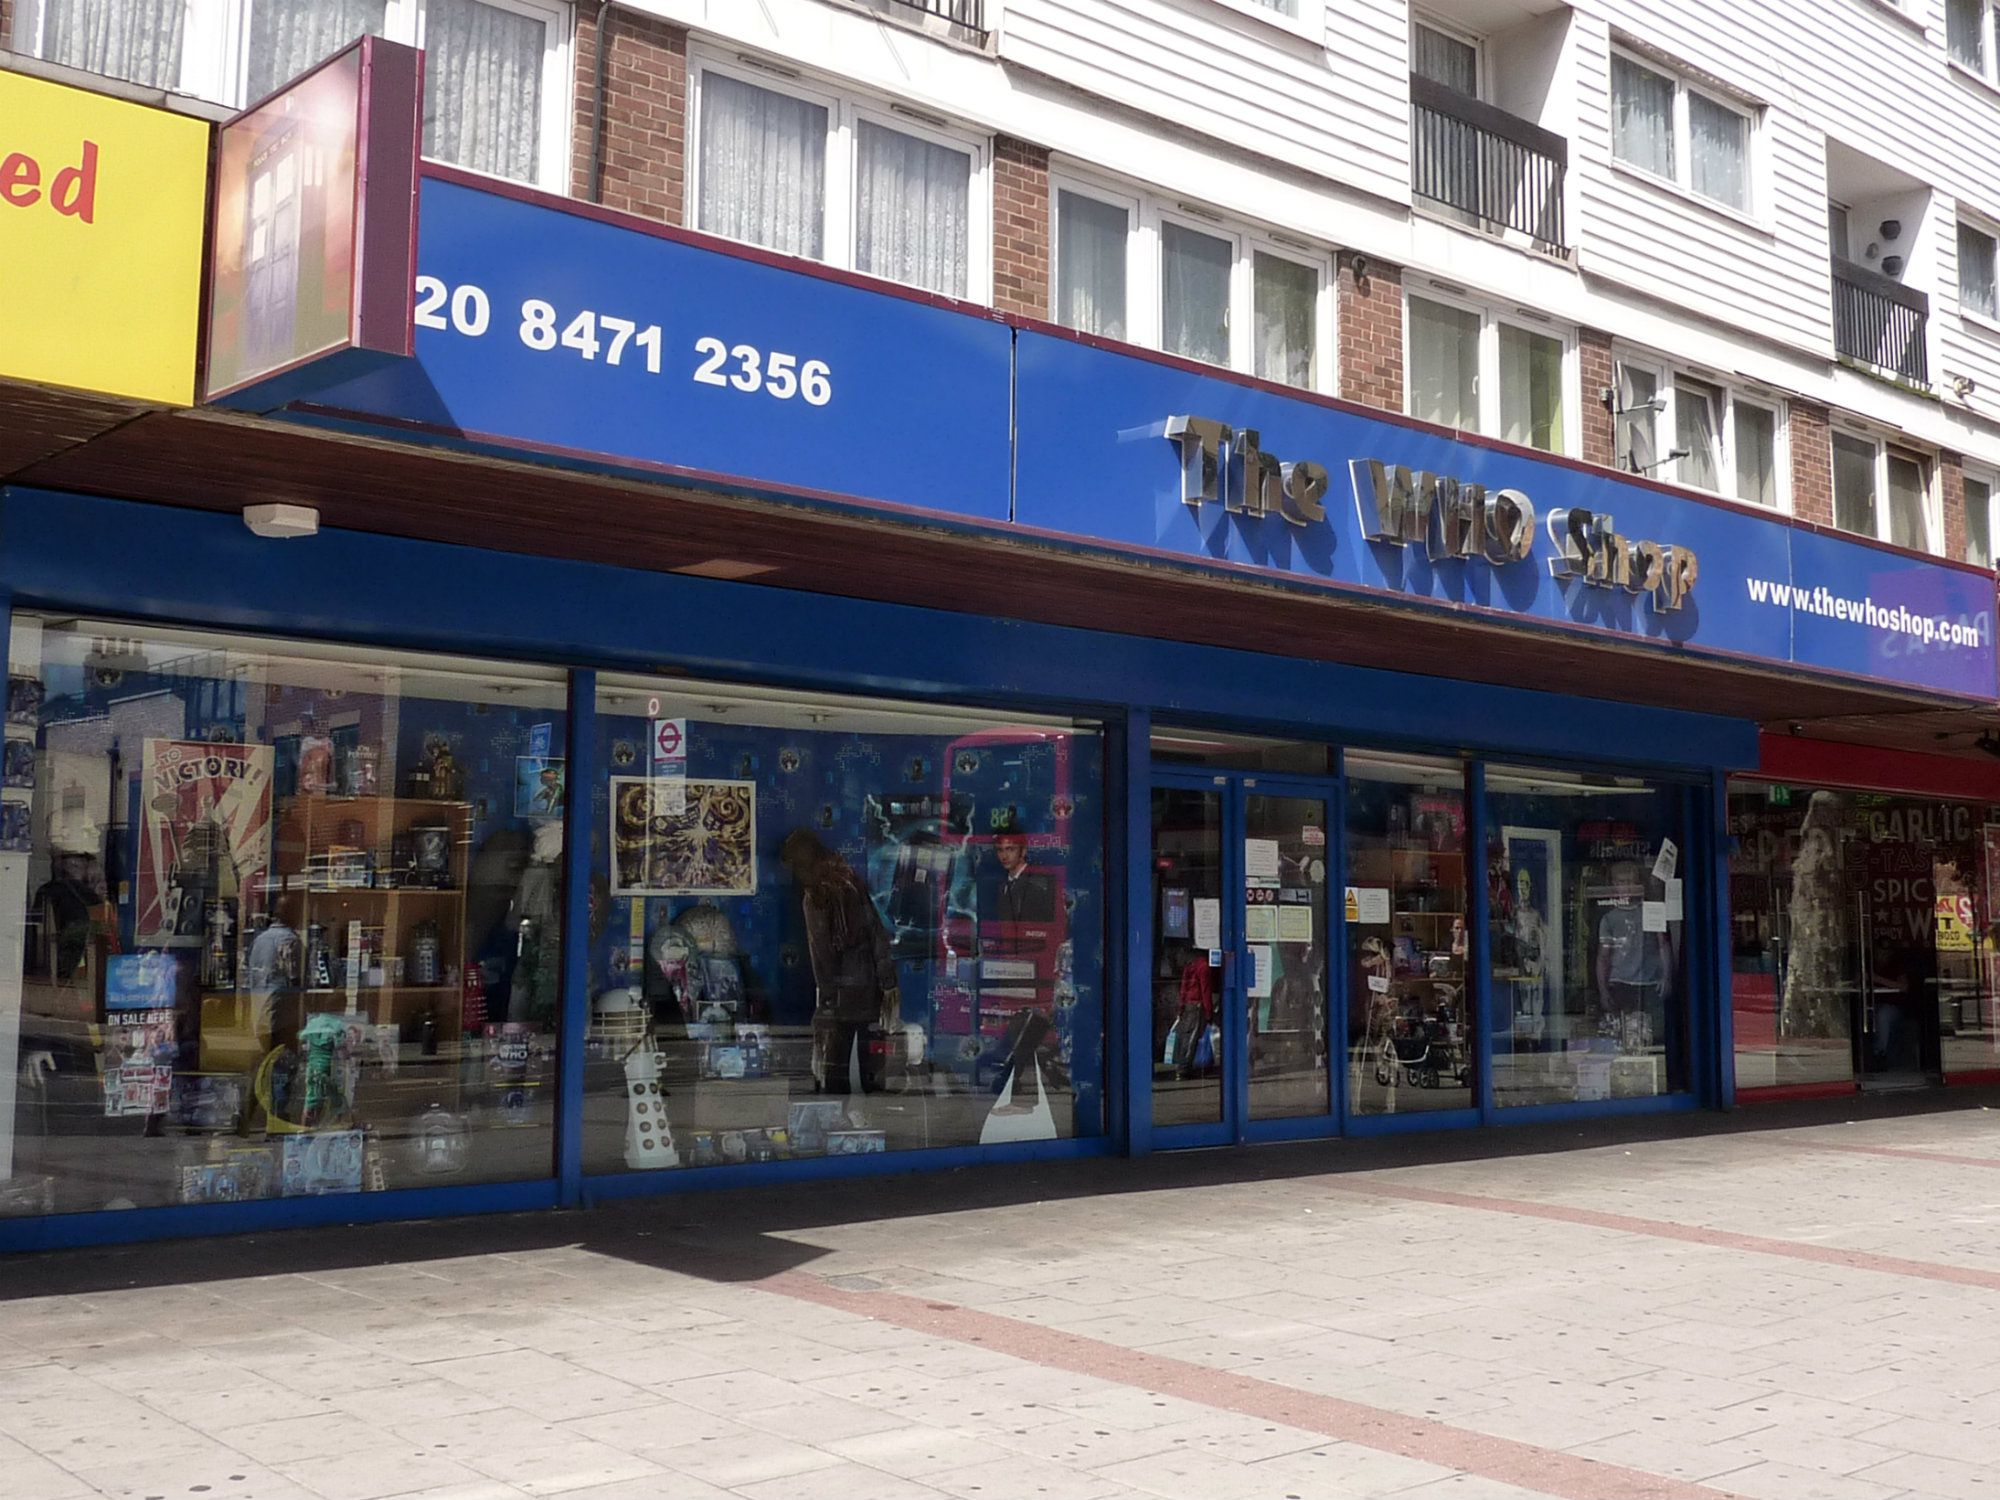 The Doctor Who Shop and Museum